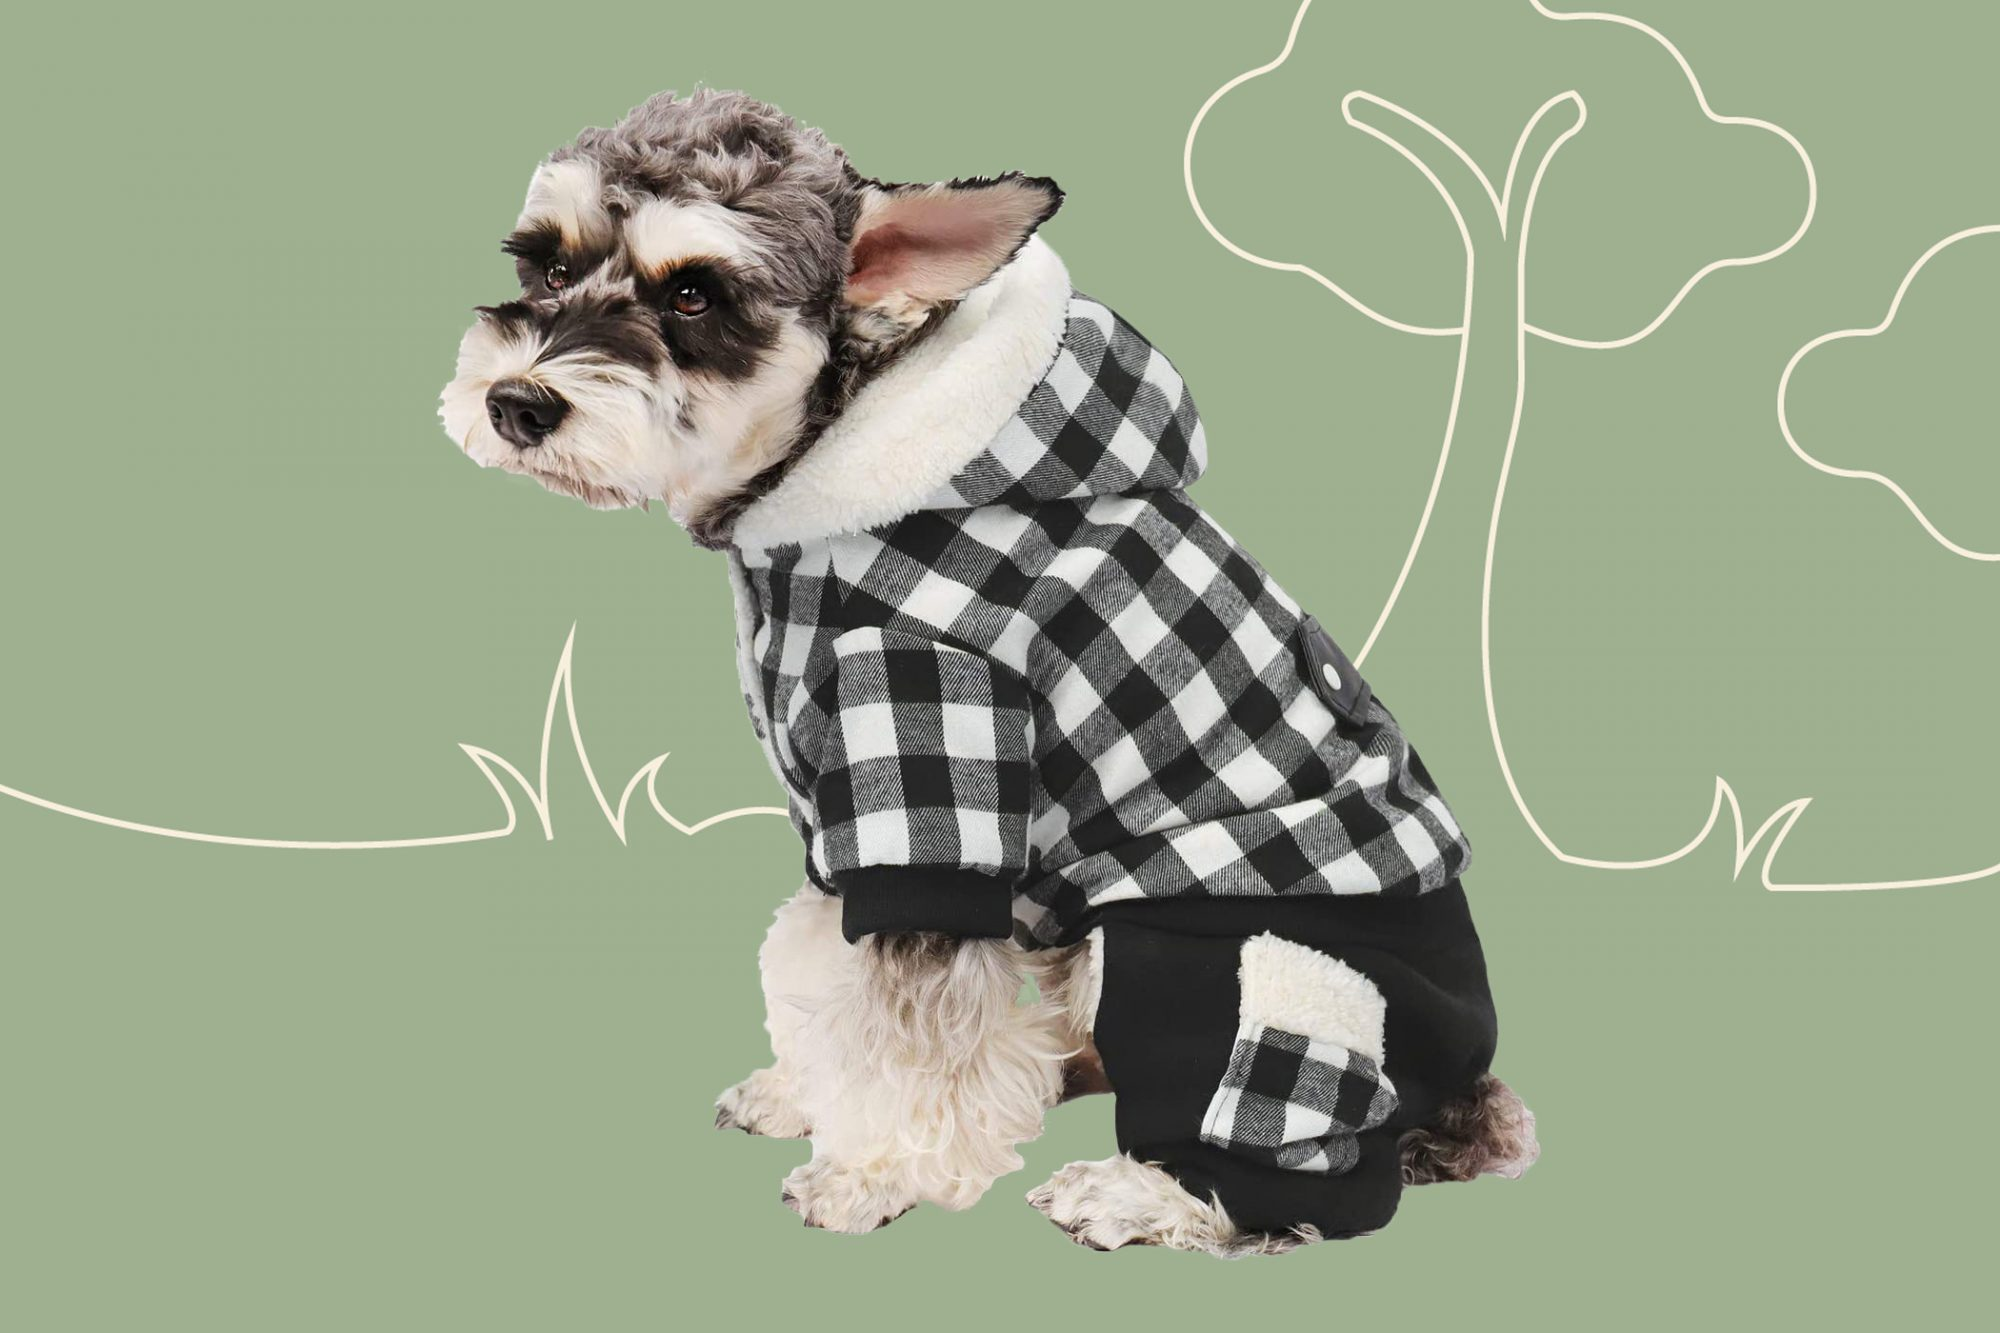 White and black small dog sits while dressed in a checkered black and white puppy coat